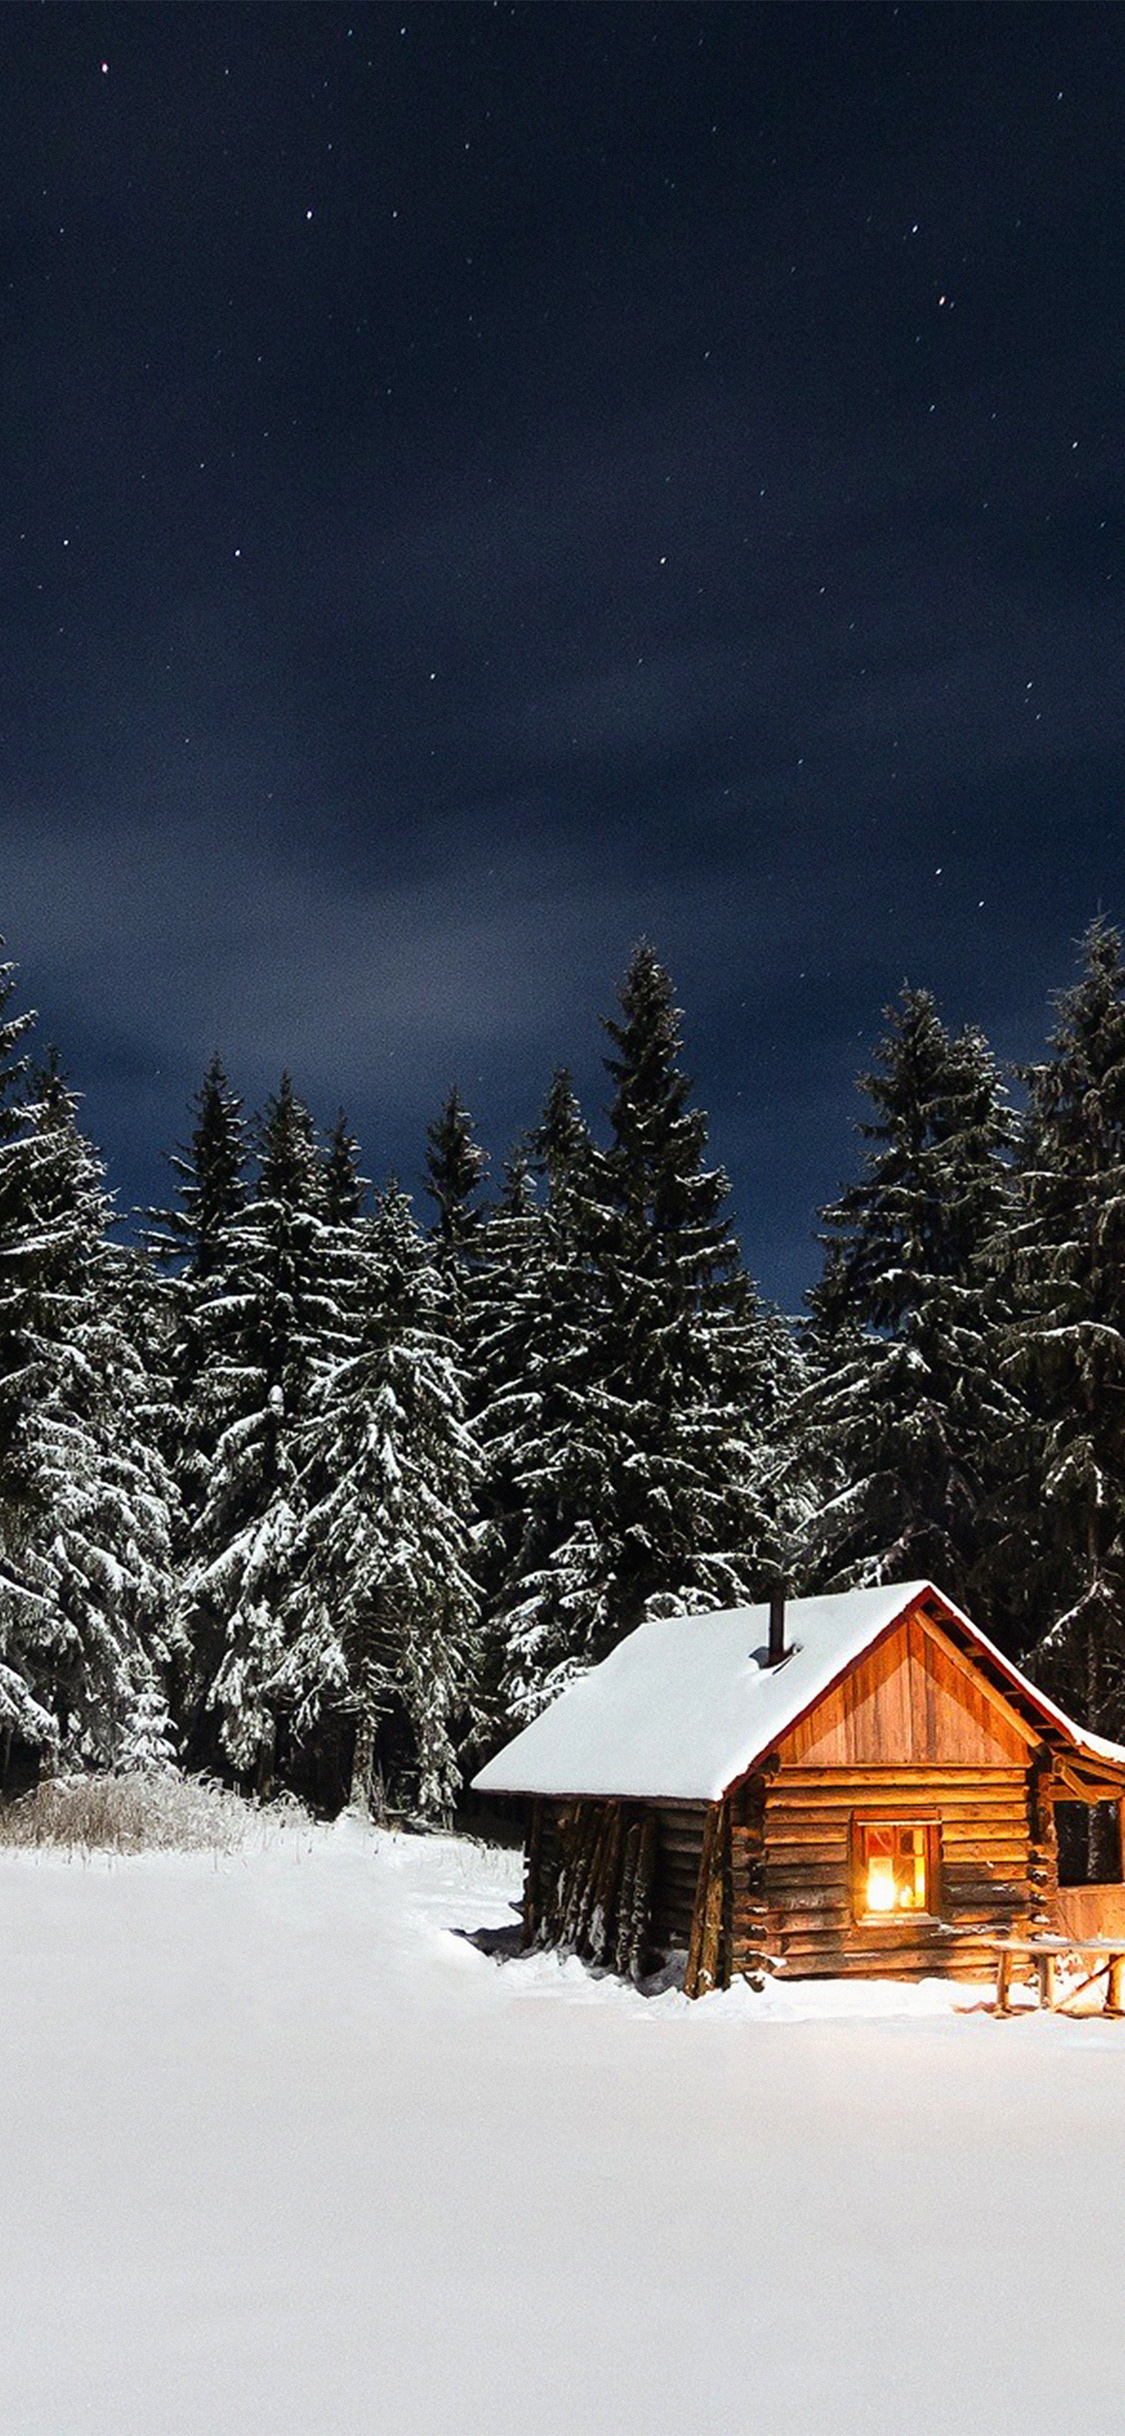 iPhoneXpapers.com-Apple-iPhone-wallpaper-nl37-winter-house-night-sky-christmas